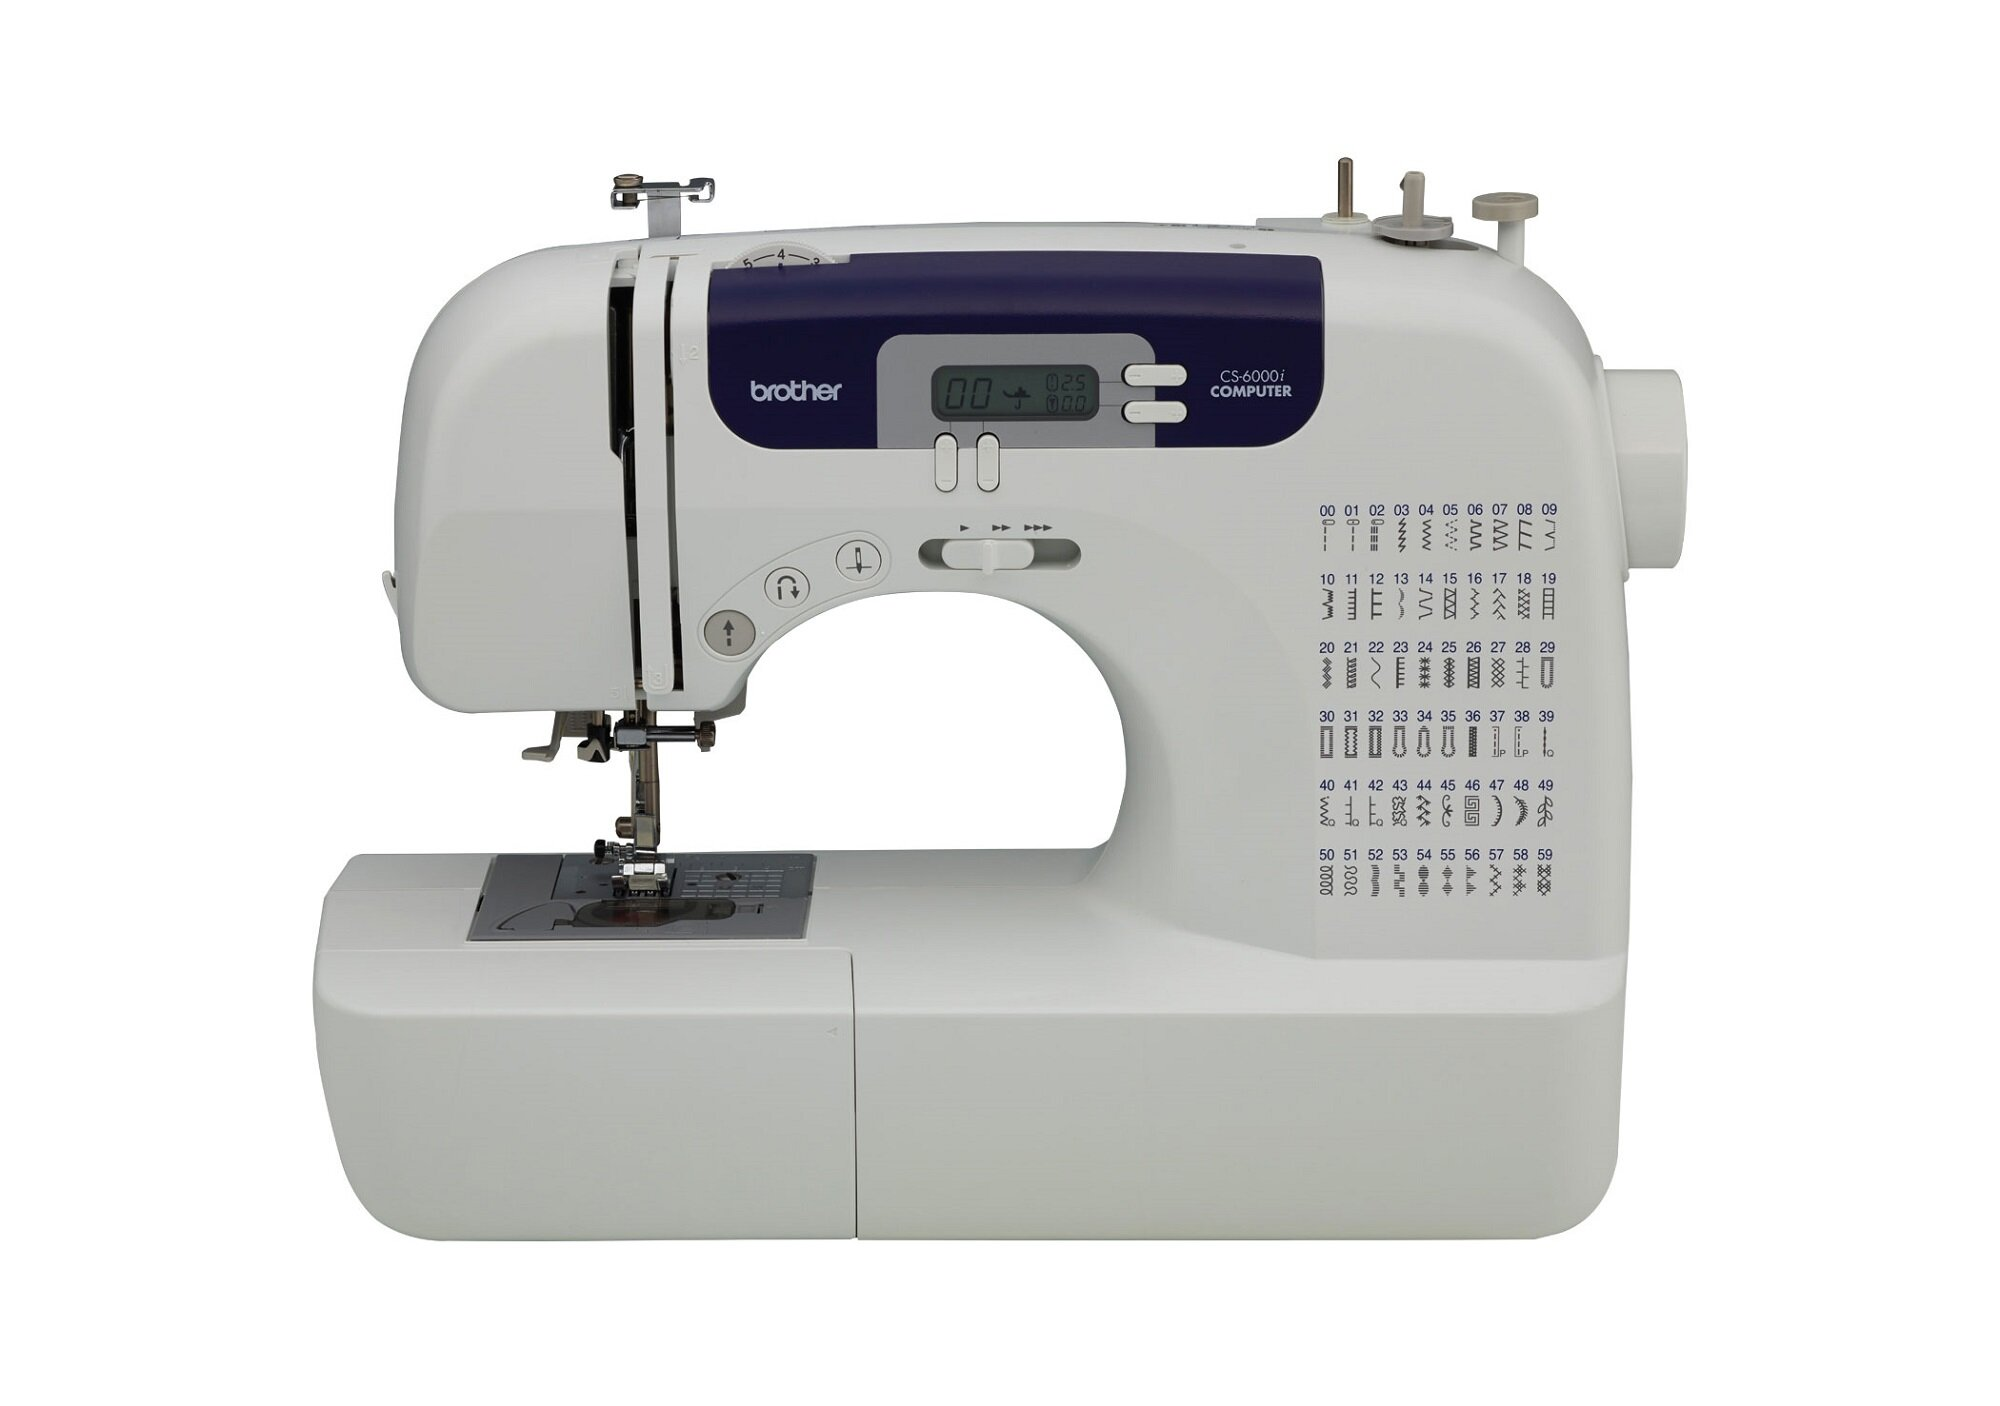 Automatic+Thread+Tension+Control+60 Stitch+Computerized+Sewing+Machine+with+wide+table